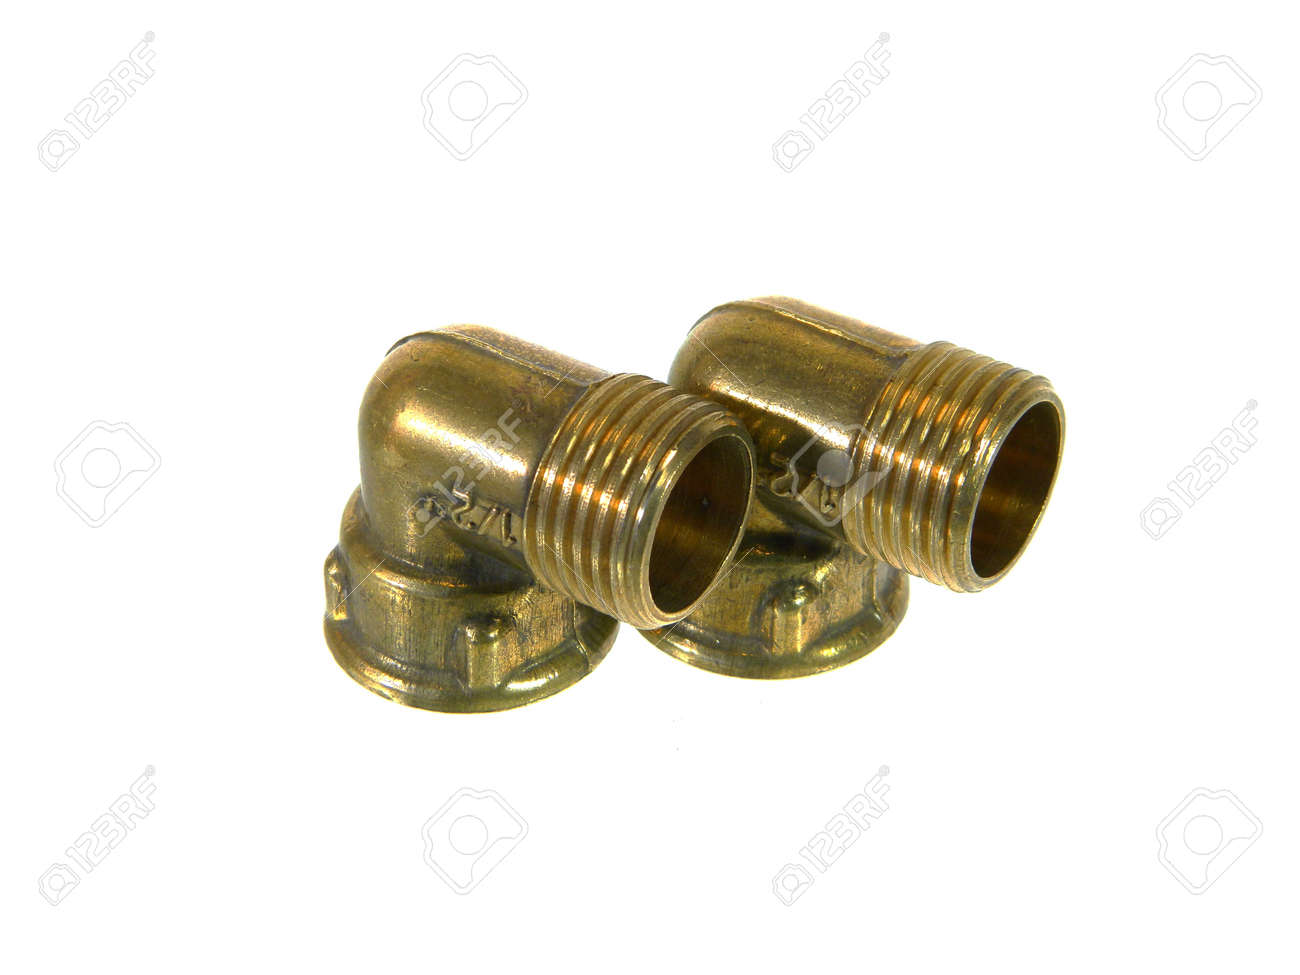 threaded pipe isolated on white background - 171619886